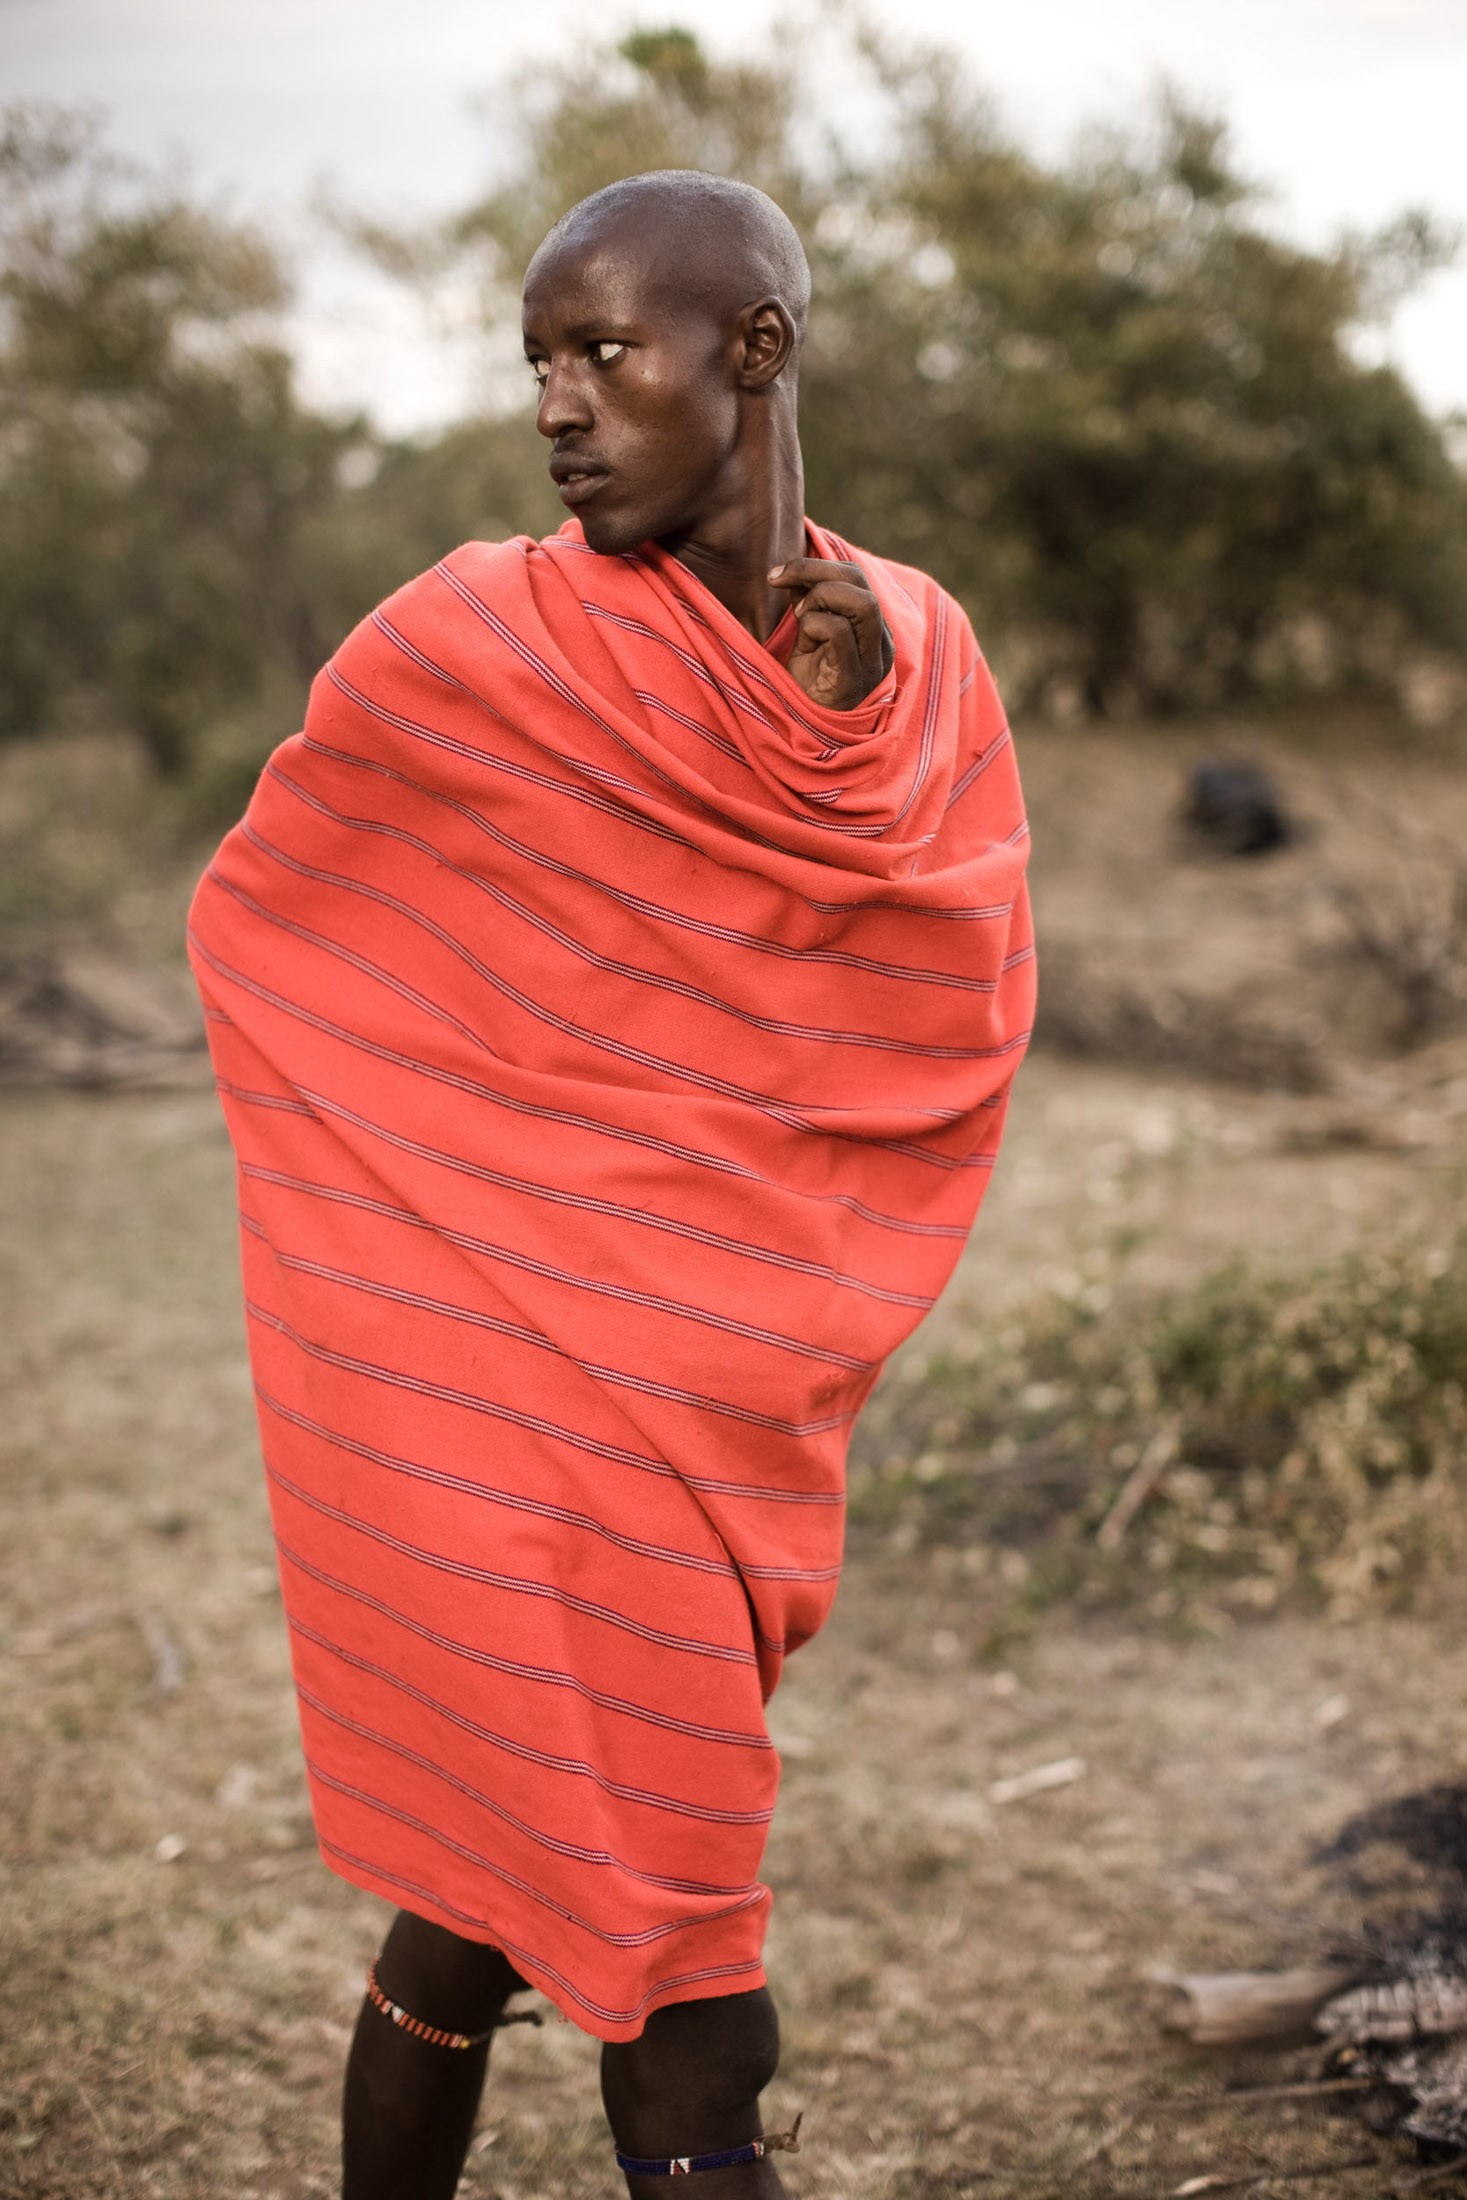 Maasai trade livestock for the purchase of grains, beads, and clothing. Cows and goats are also sold for uniforms and school fees; those sent away from the manyatta to seek higher education often feel like outcasts